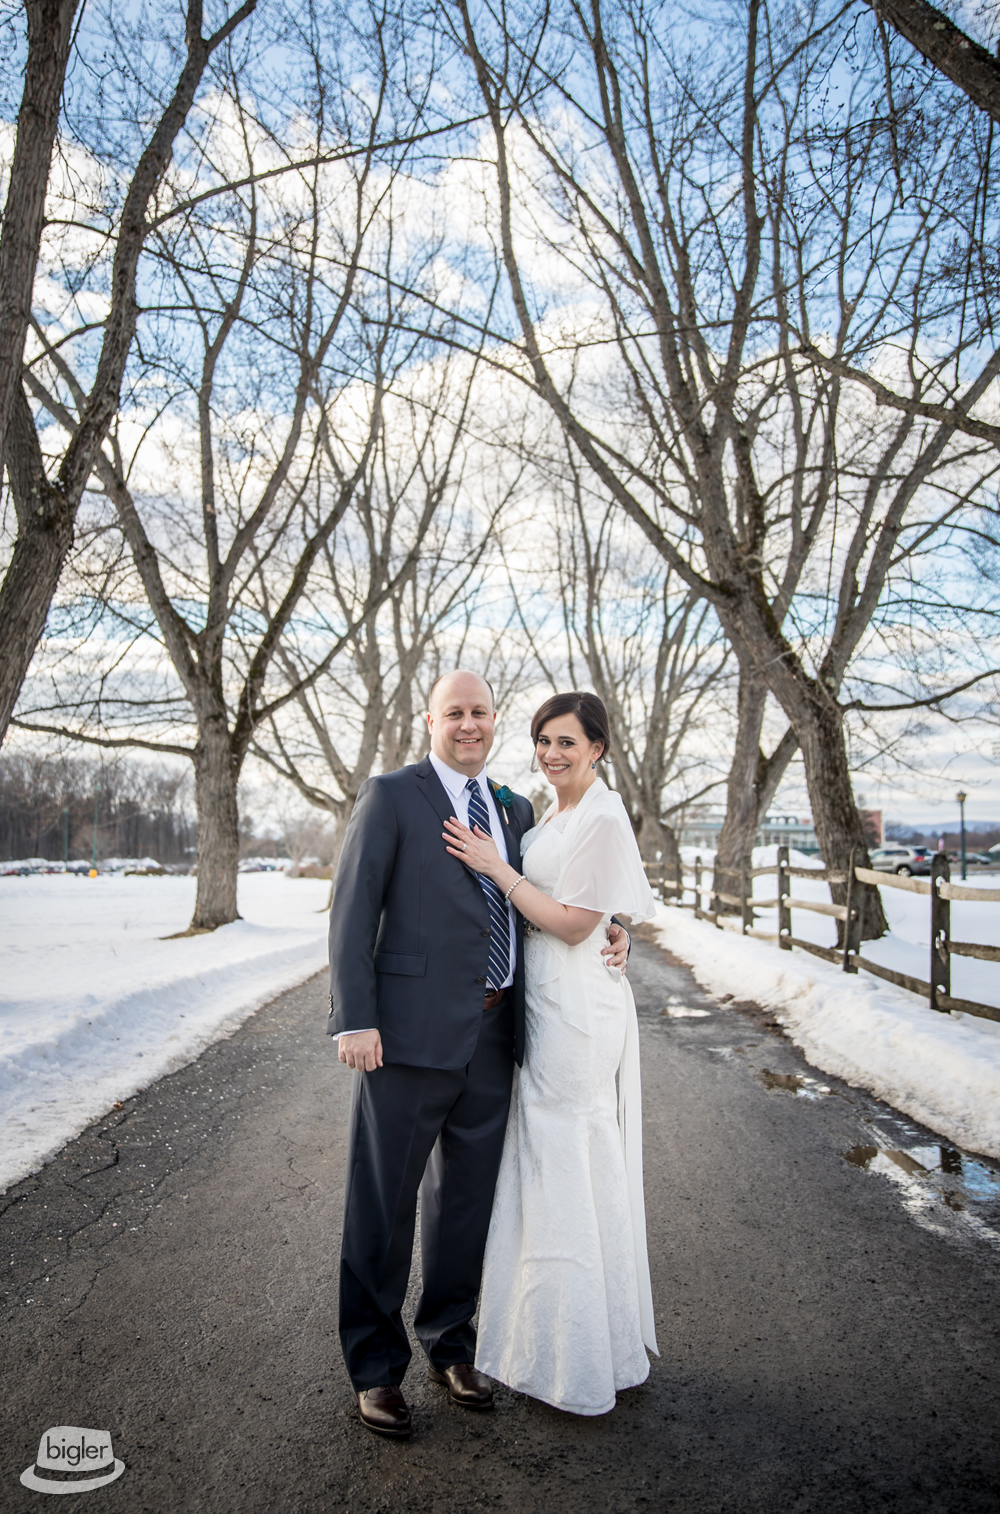 20180218_-_19_-_Winter_Wedding